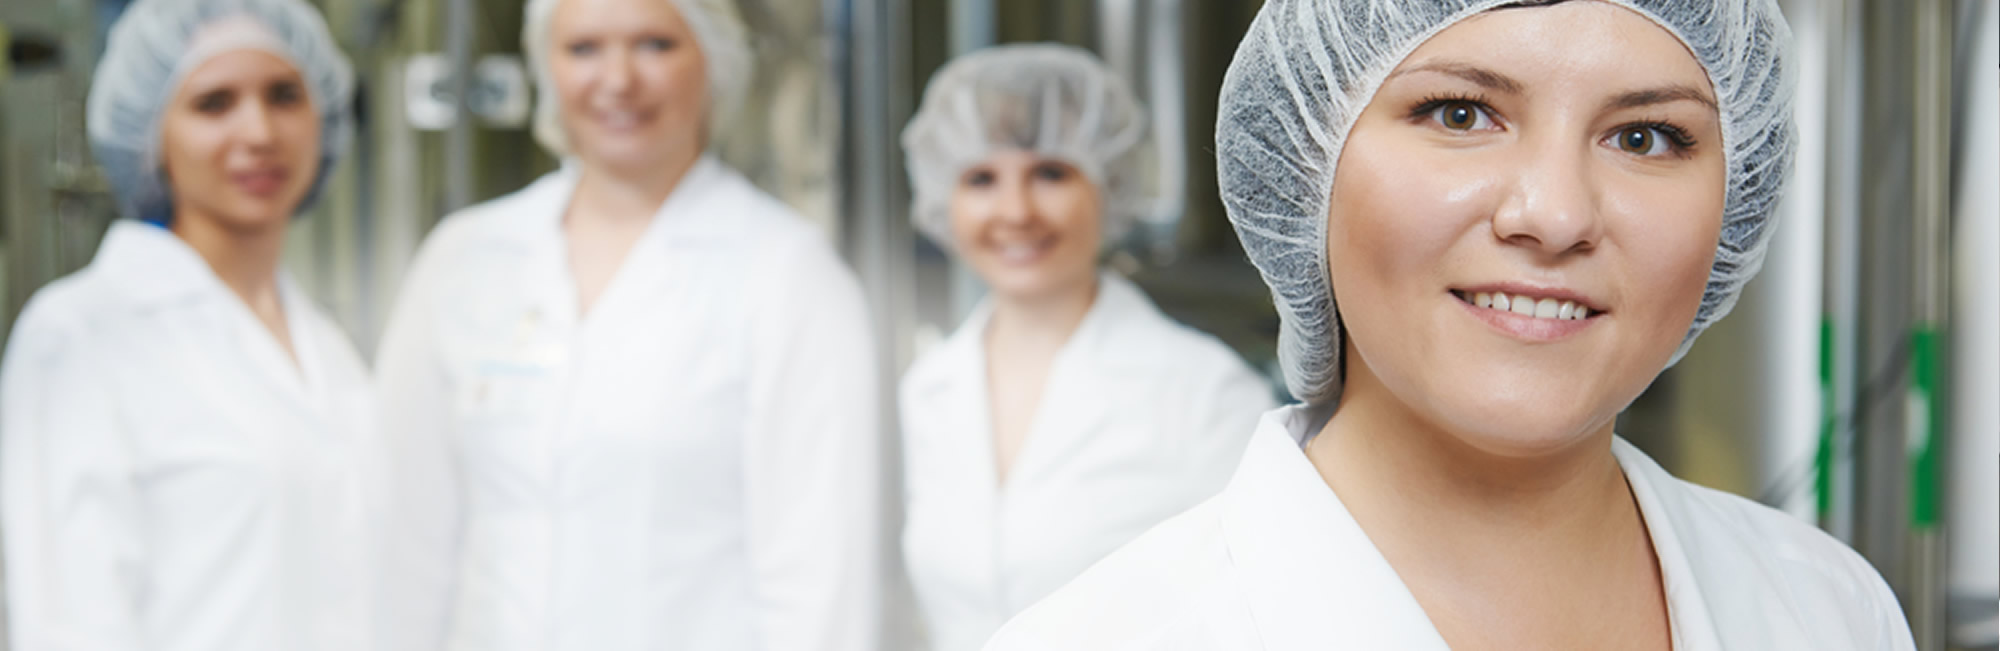 Food Production industry continues to face increasing legislative requirements in compliance and hygiene standards.